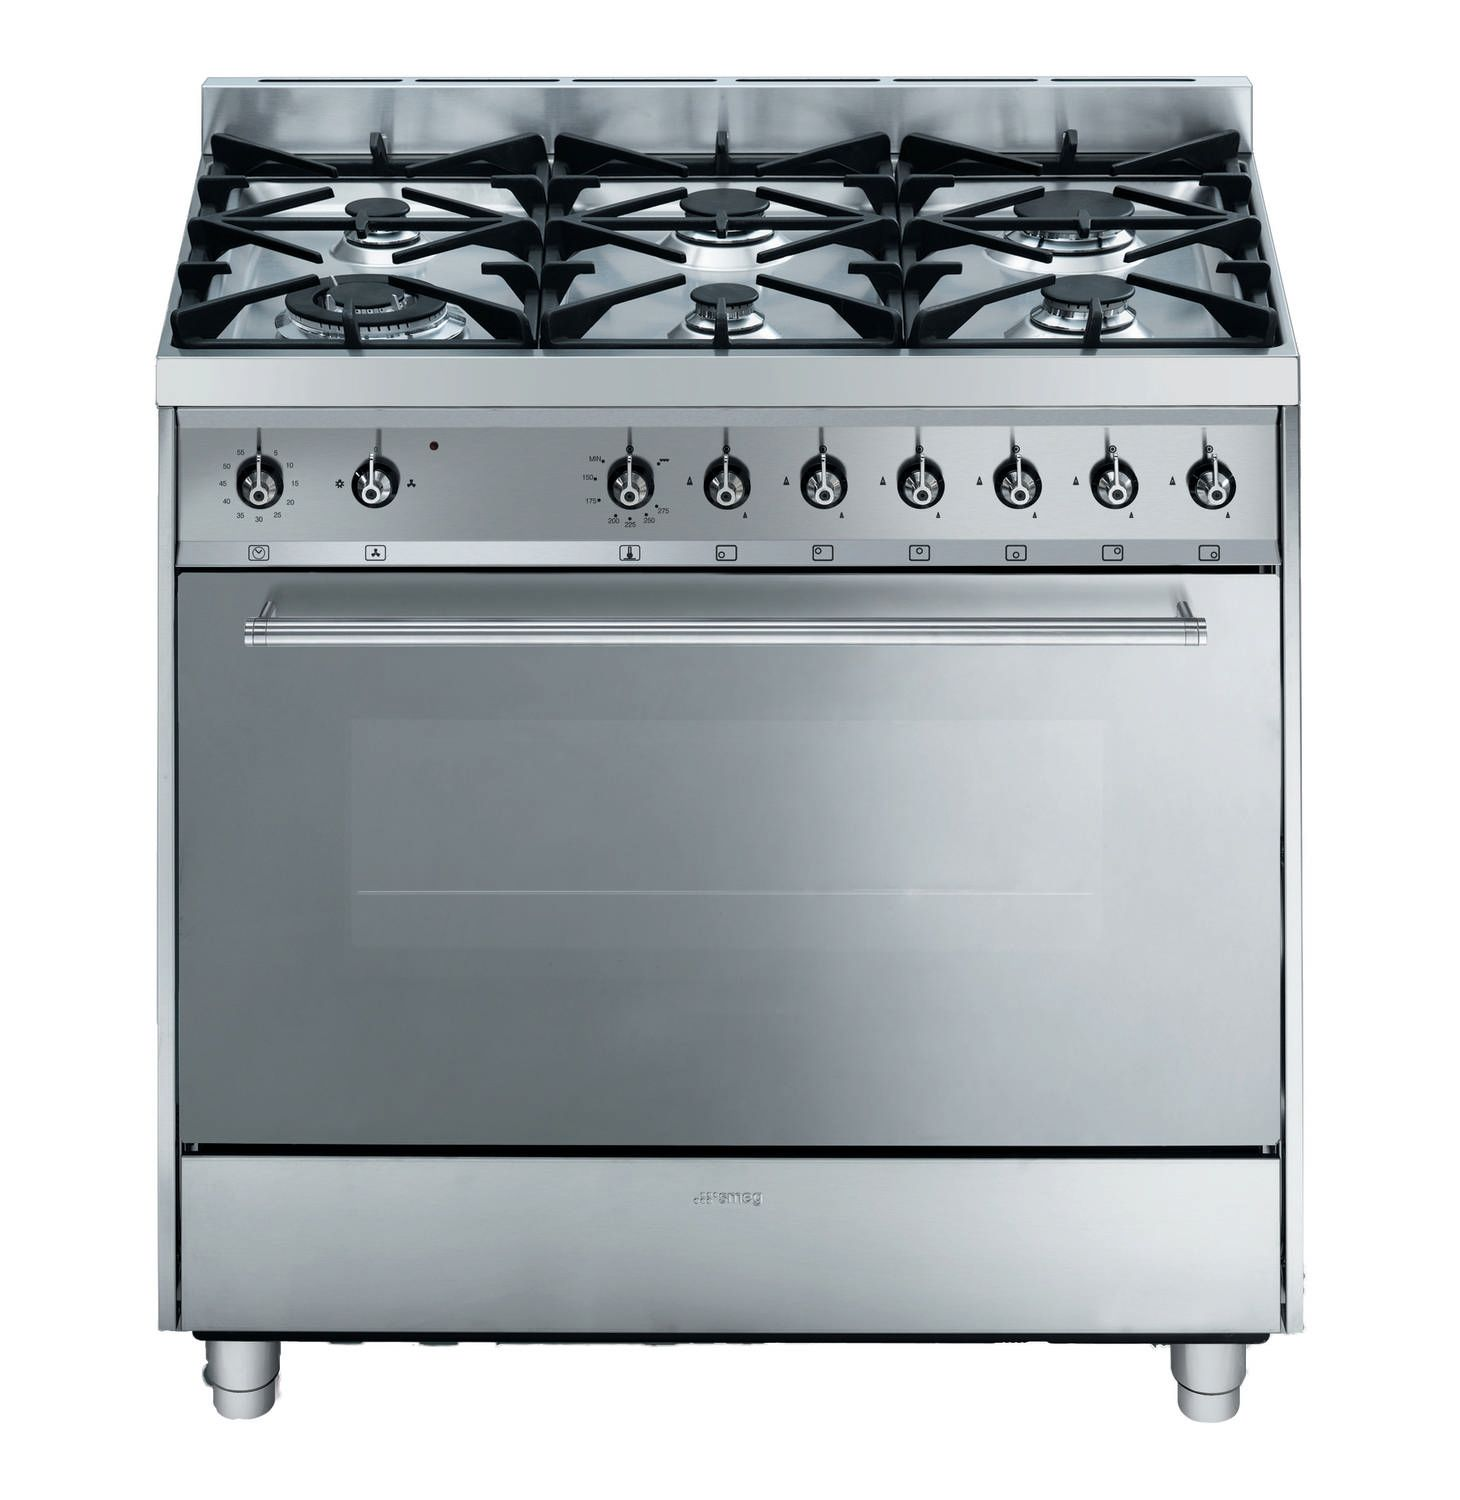 Gas Stove Prices Smeg 900mm 6 Burner Gas Stove Lowest Prices And Specials